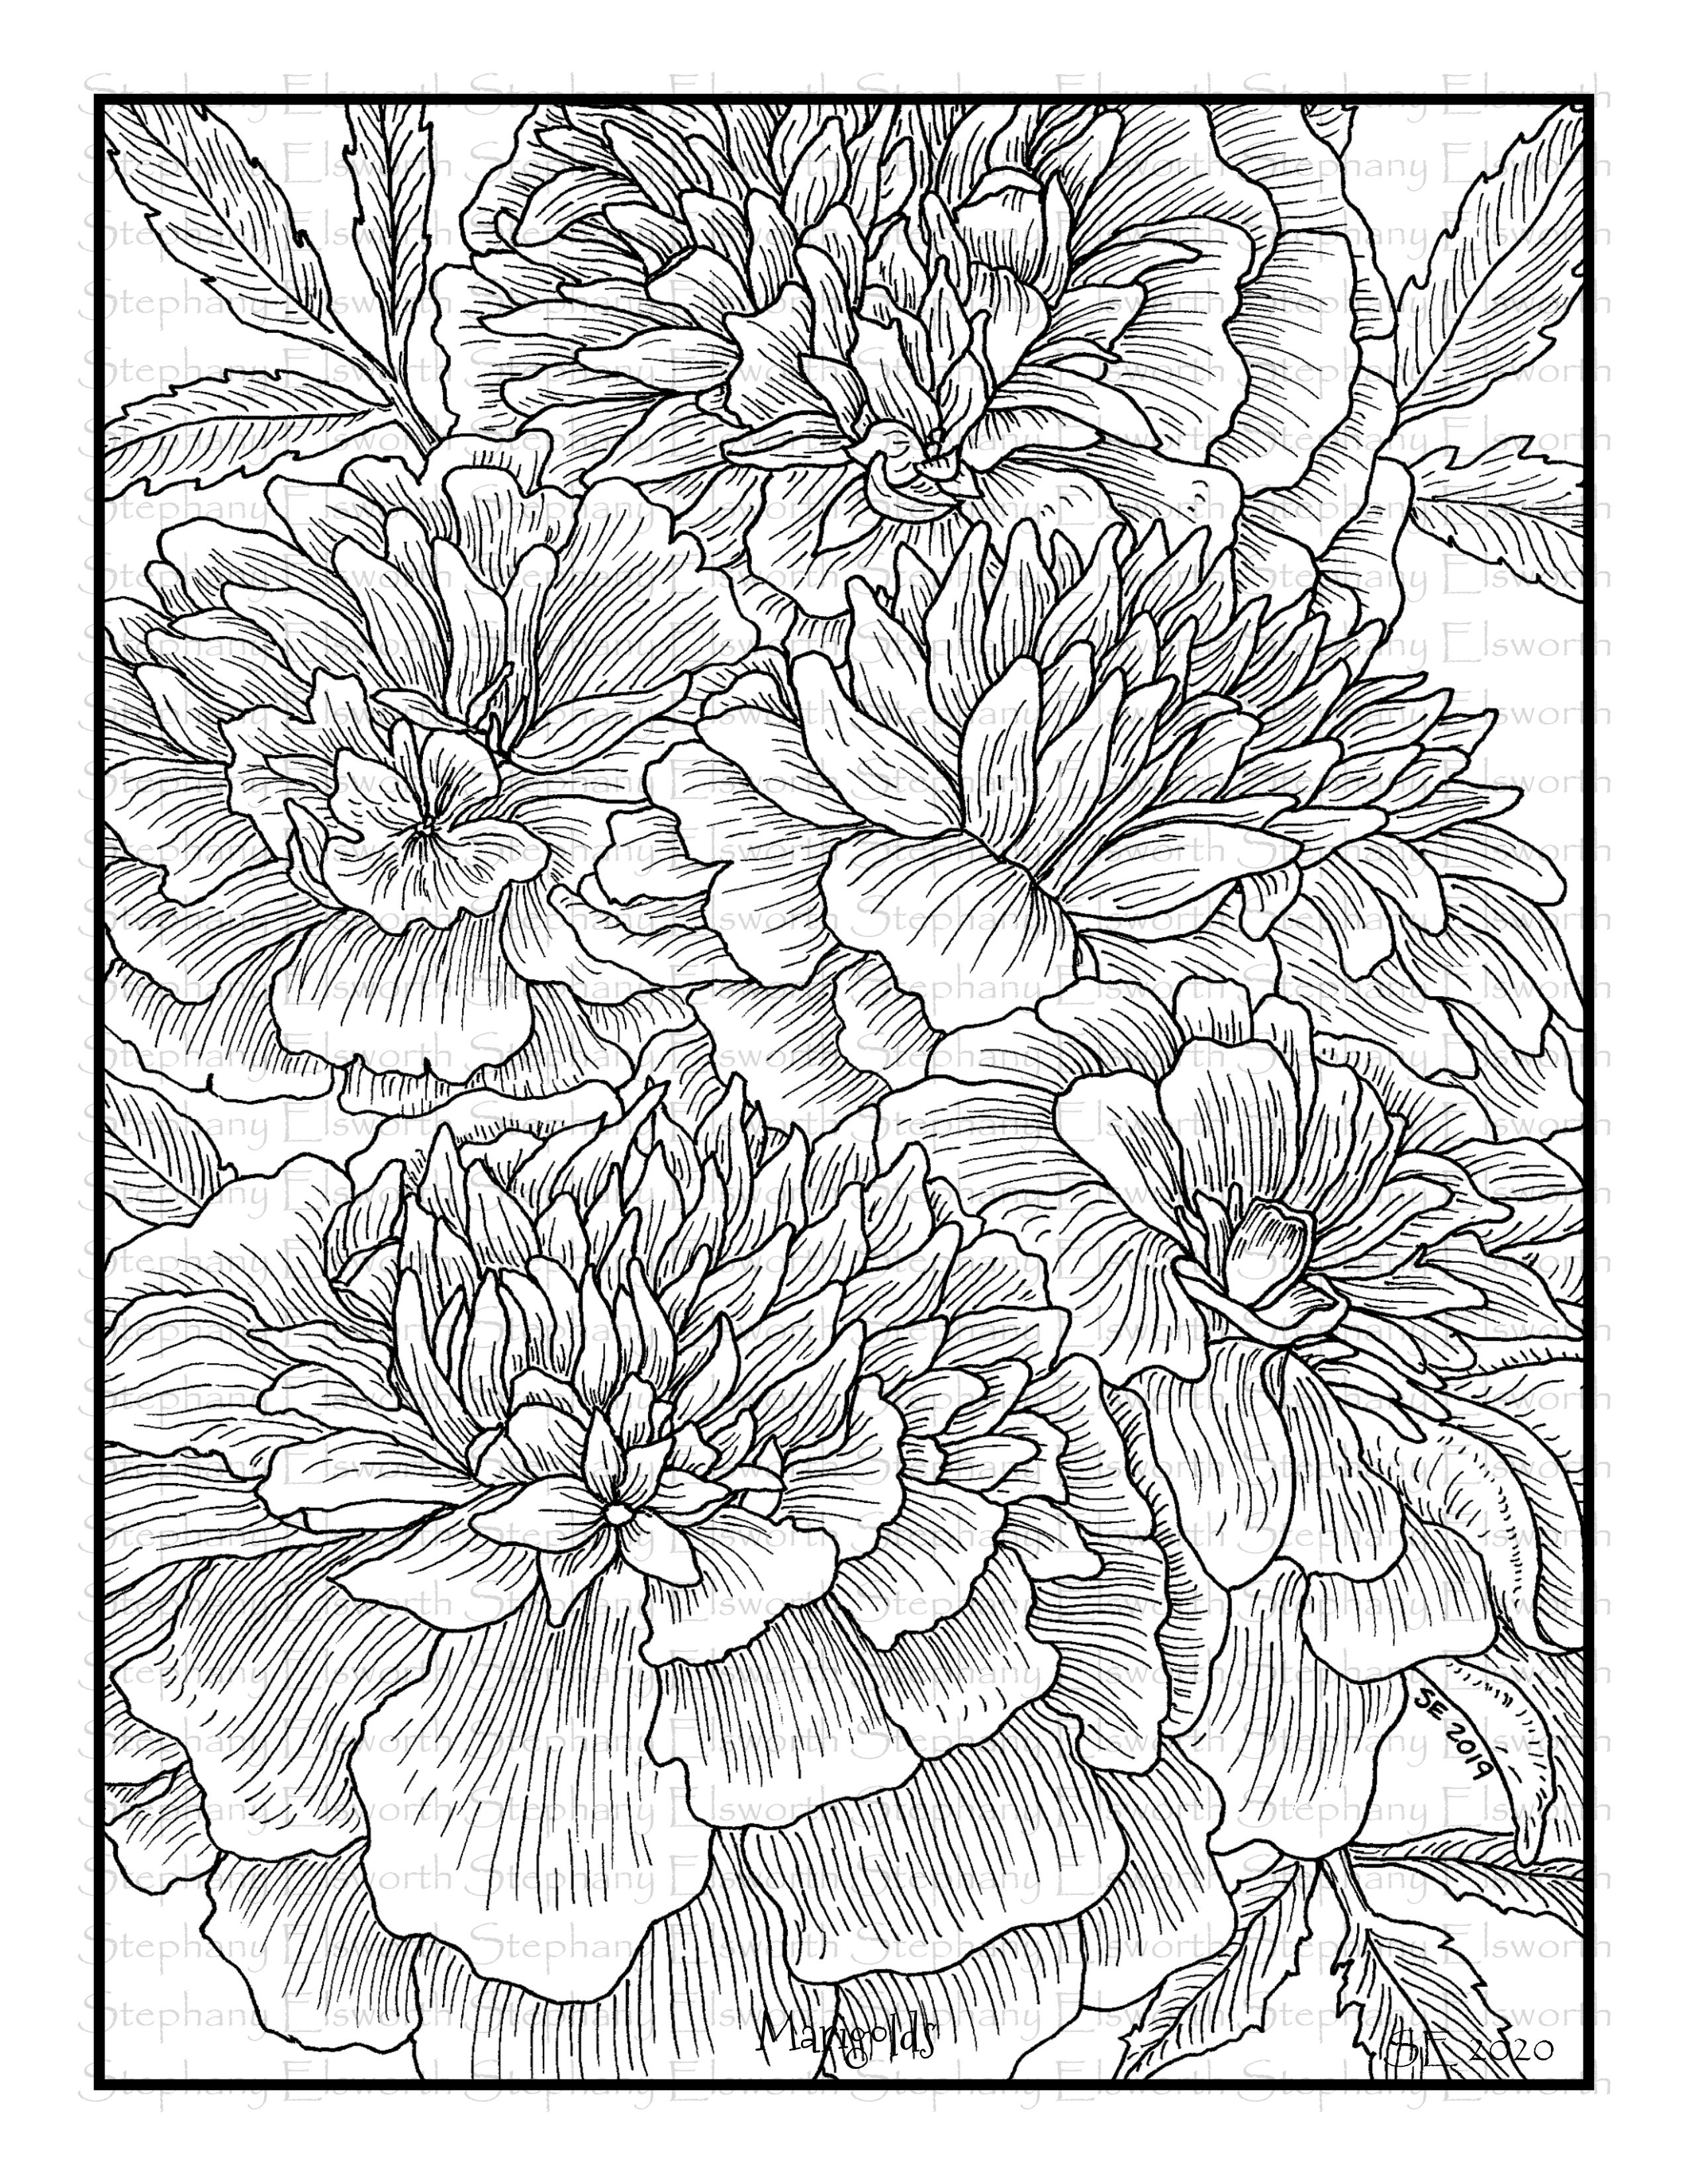 marigold coloring page marigold flower coloring pages download and print marigold page coloring